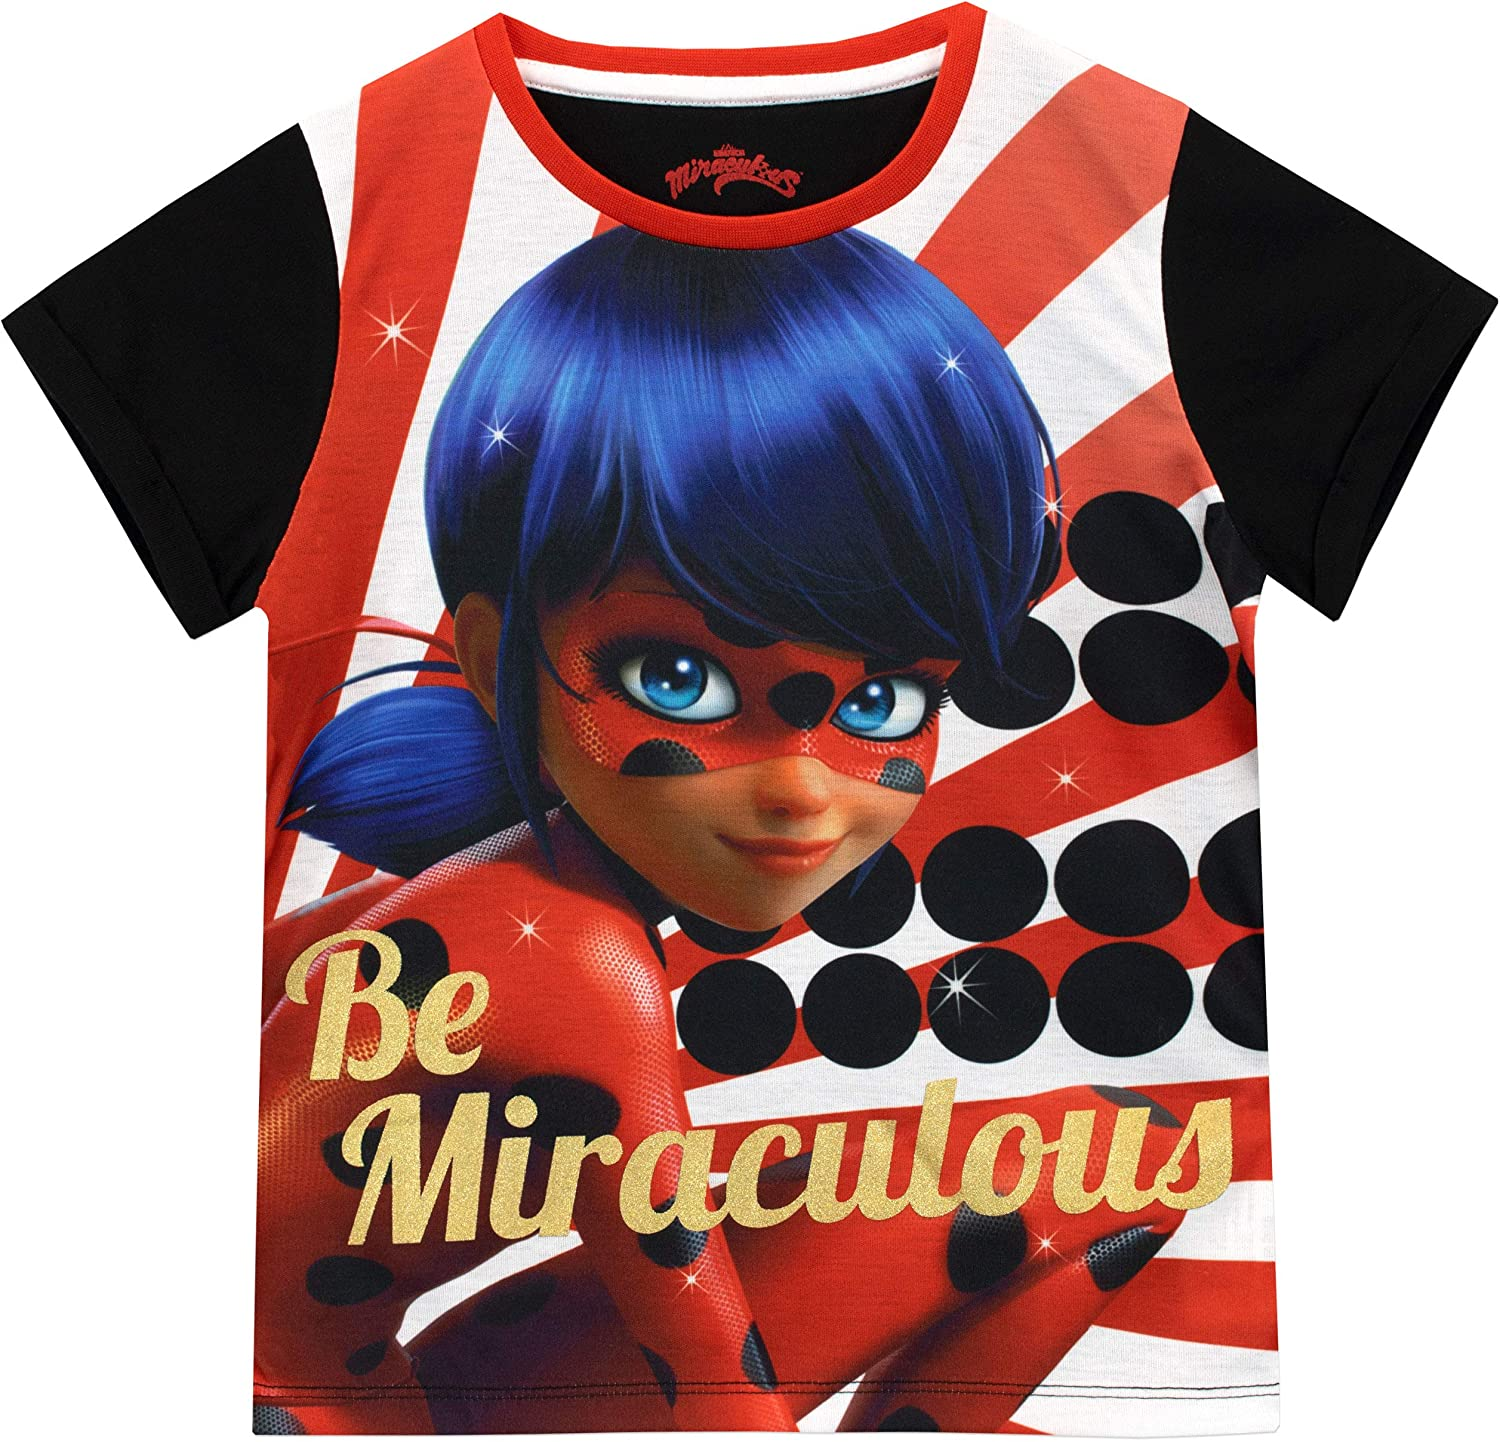 Miraculous Ladybug Girls Lady Bug T-Shirt